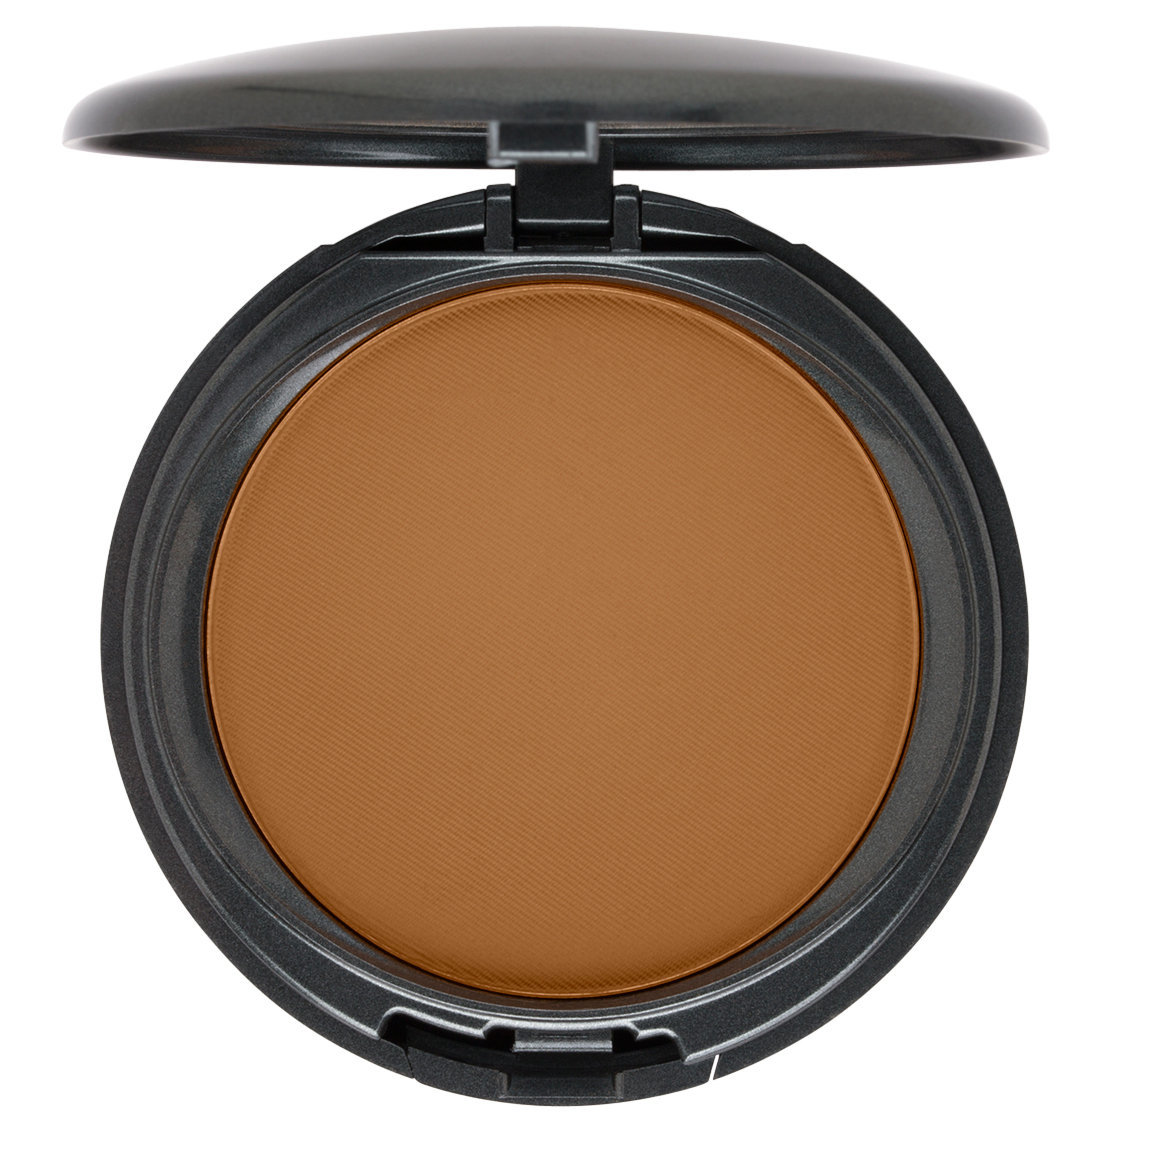 COVER | FX Pressed Mineral Foundation G80 alternative view 1 - product swatch.